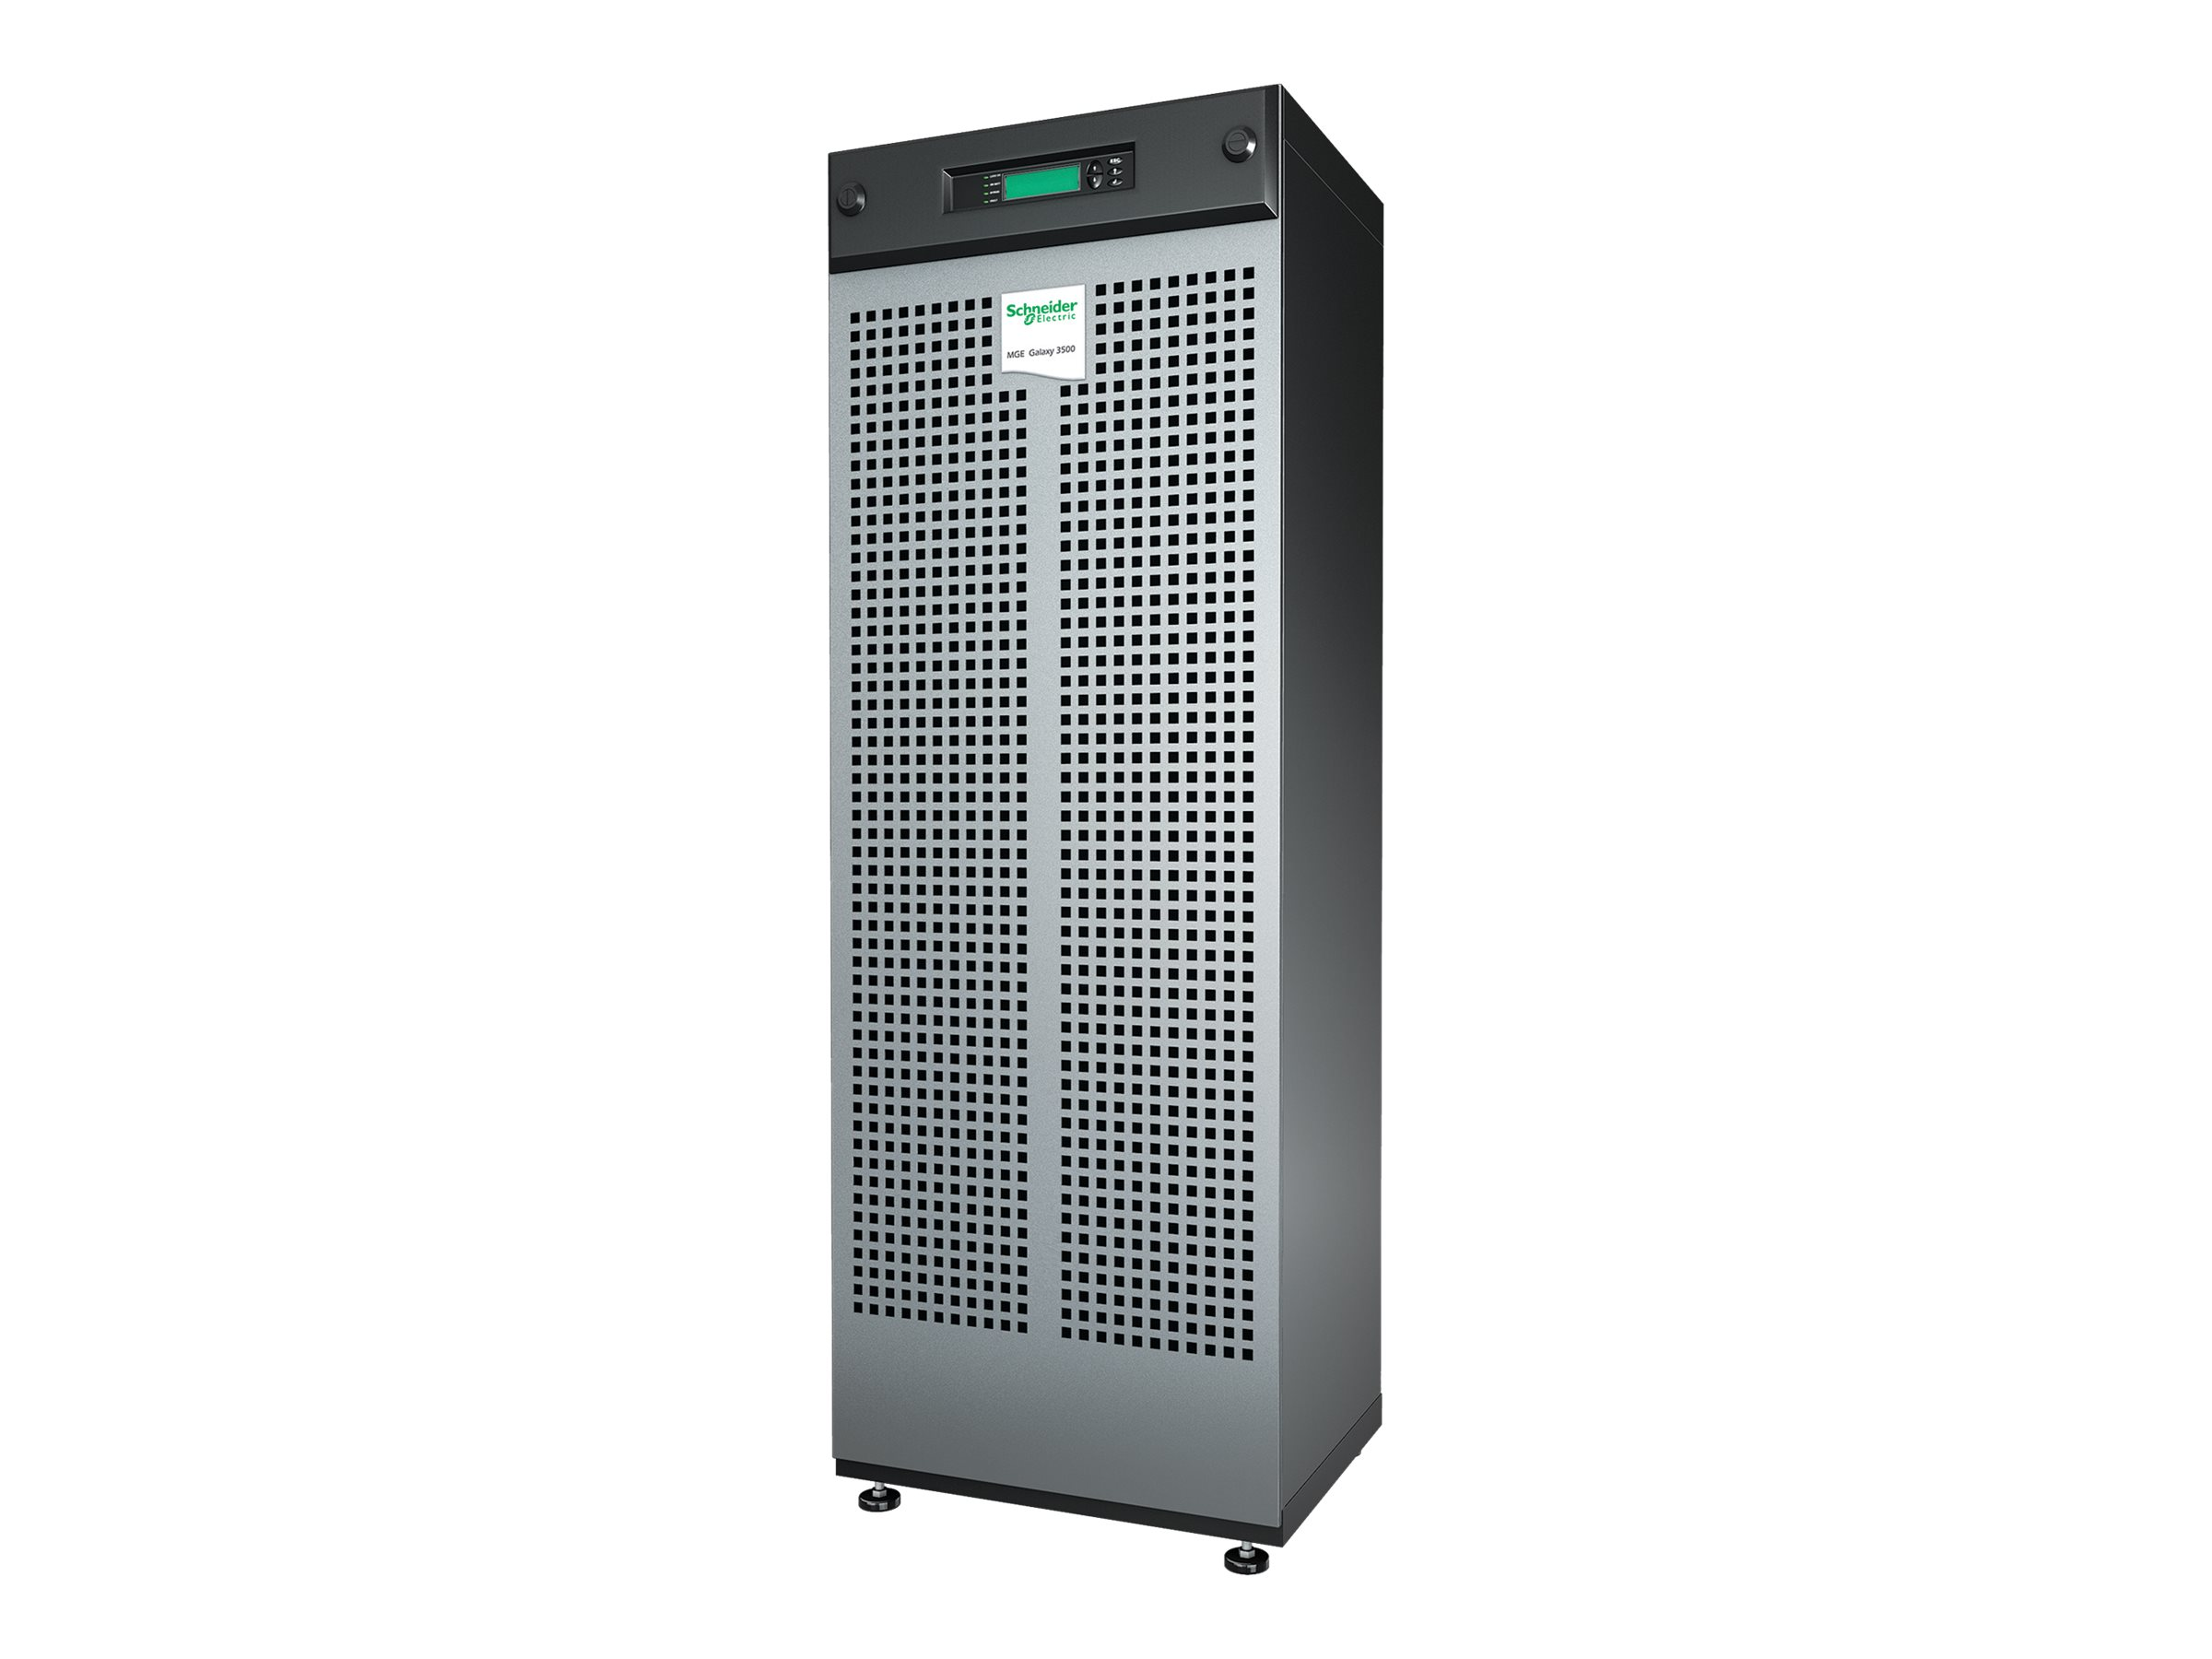 MGE Galaxy 3500 with 3 Battery Modules Expandable to 4 - UPS - 24 kW - 30000 VA